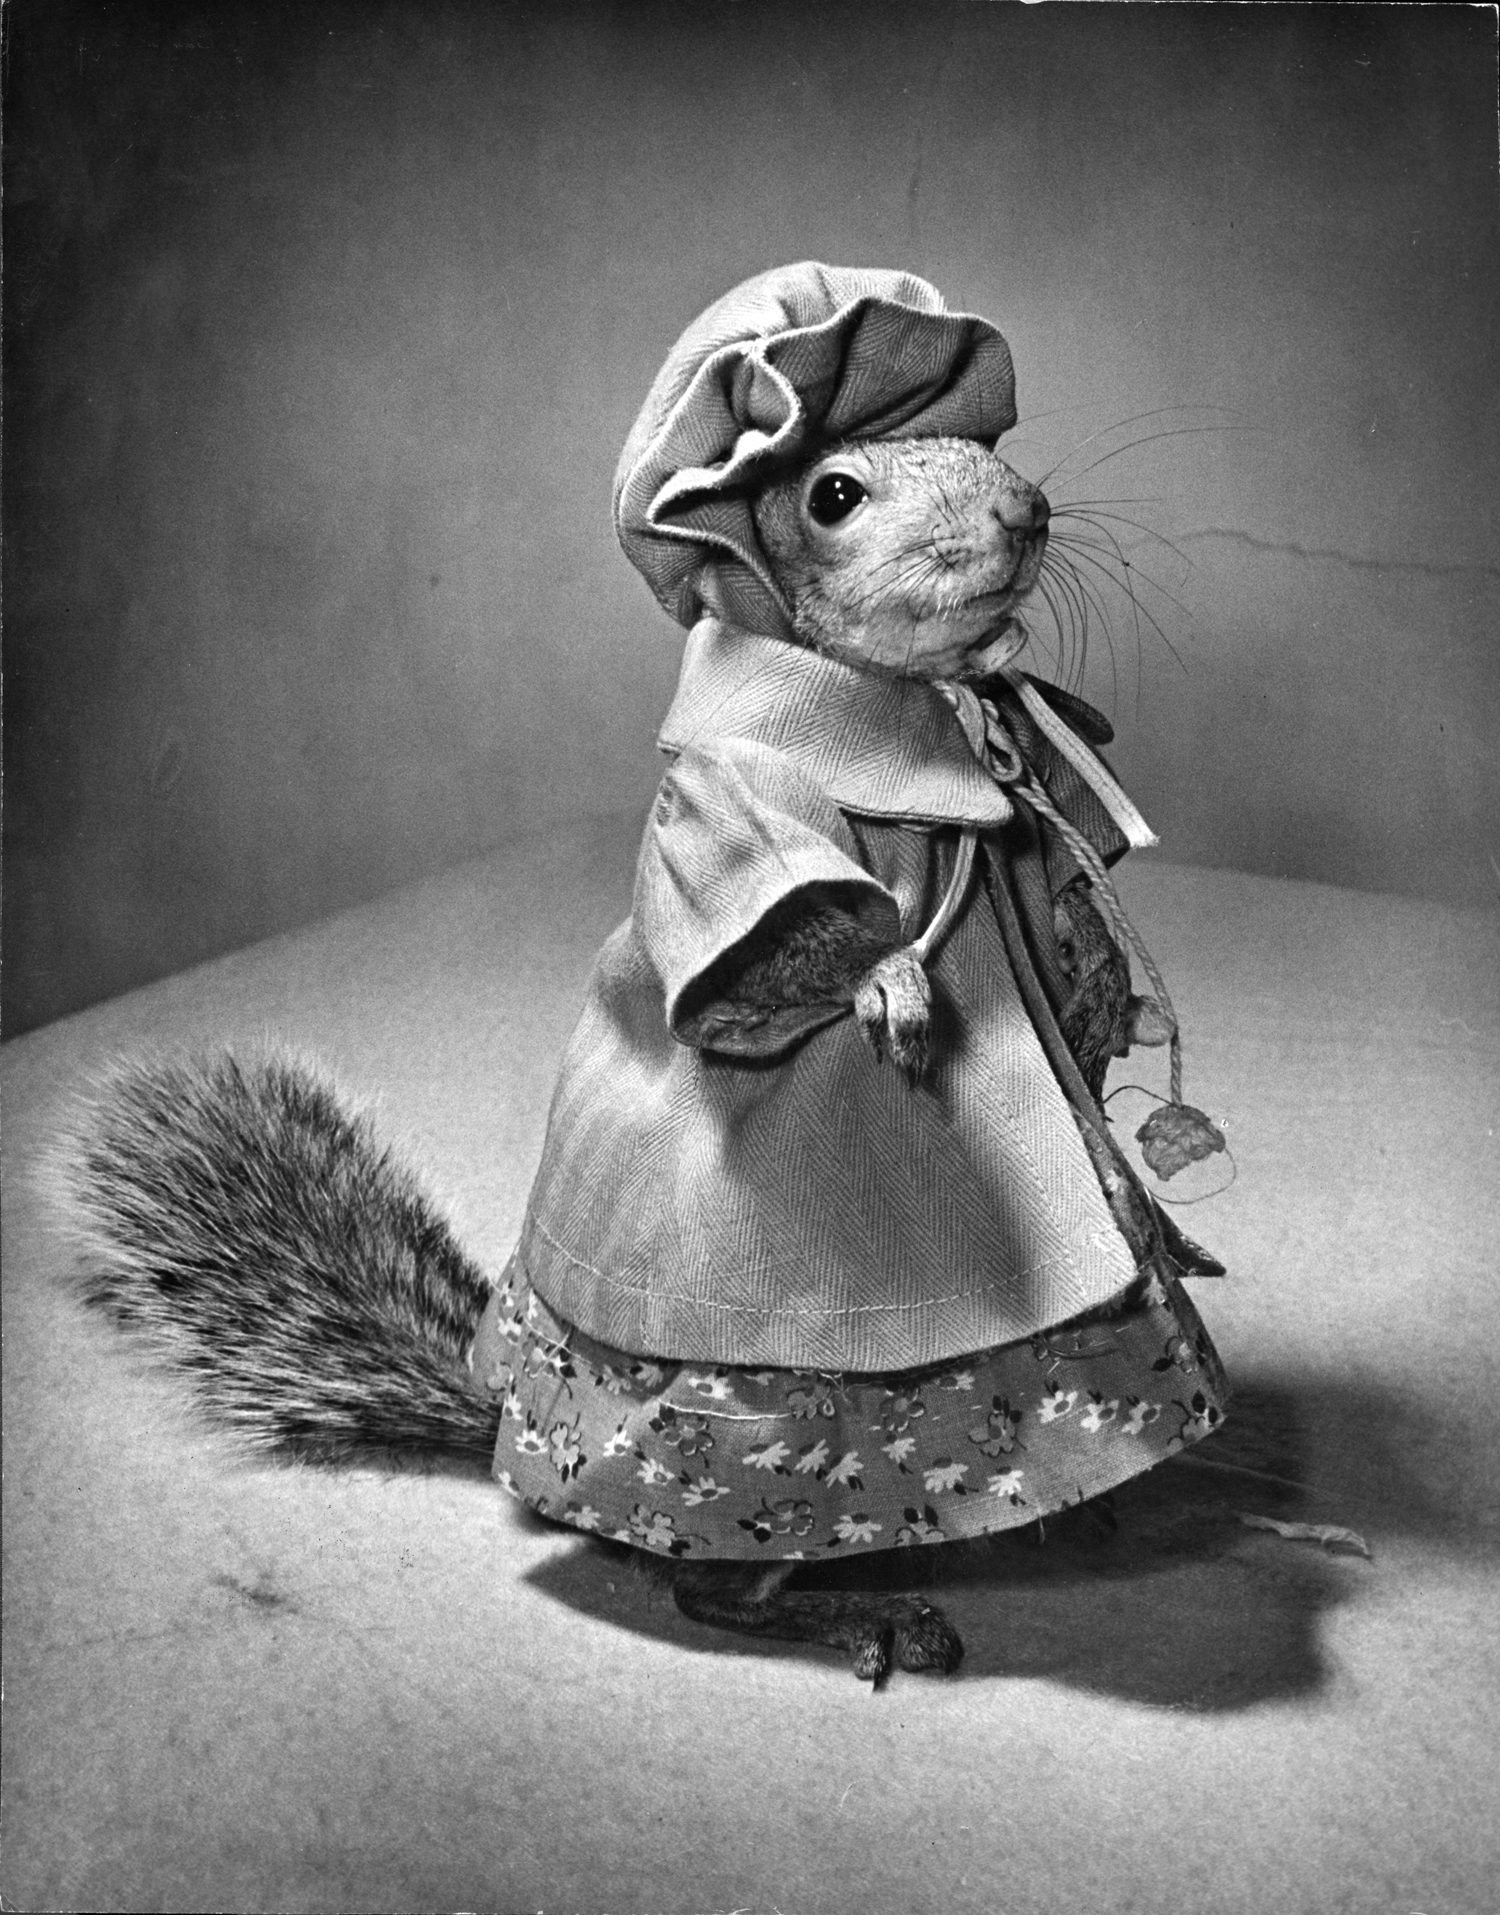 A squirrel wearing a baby doll's dress.